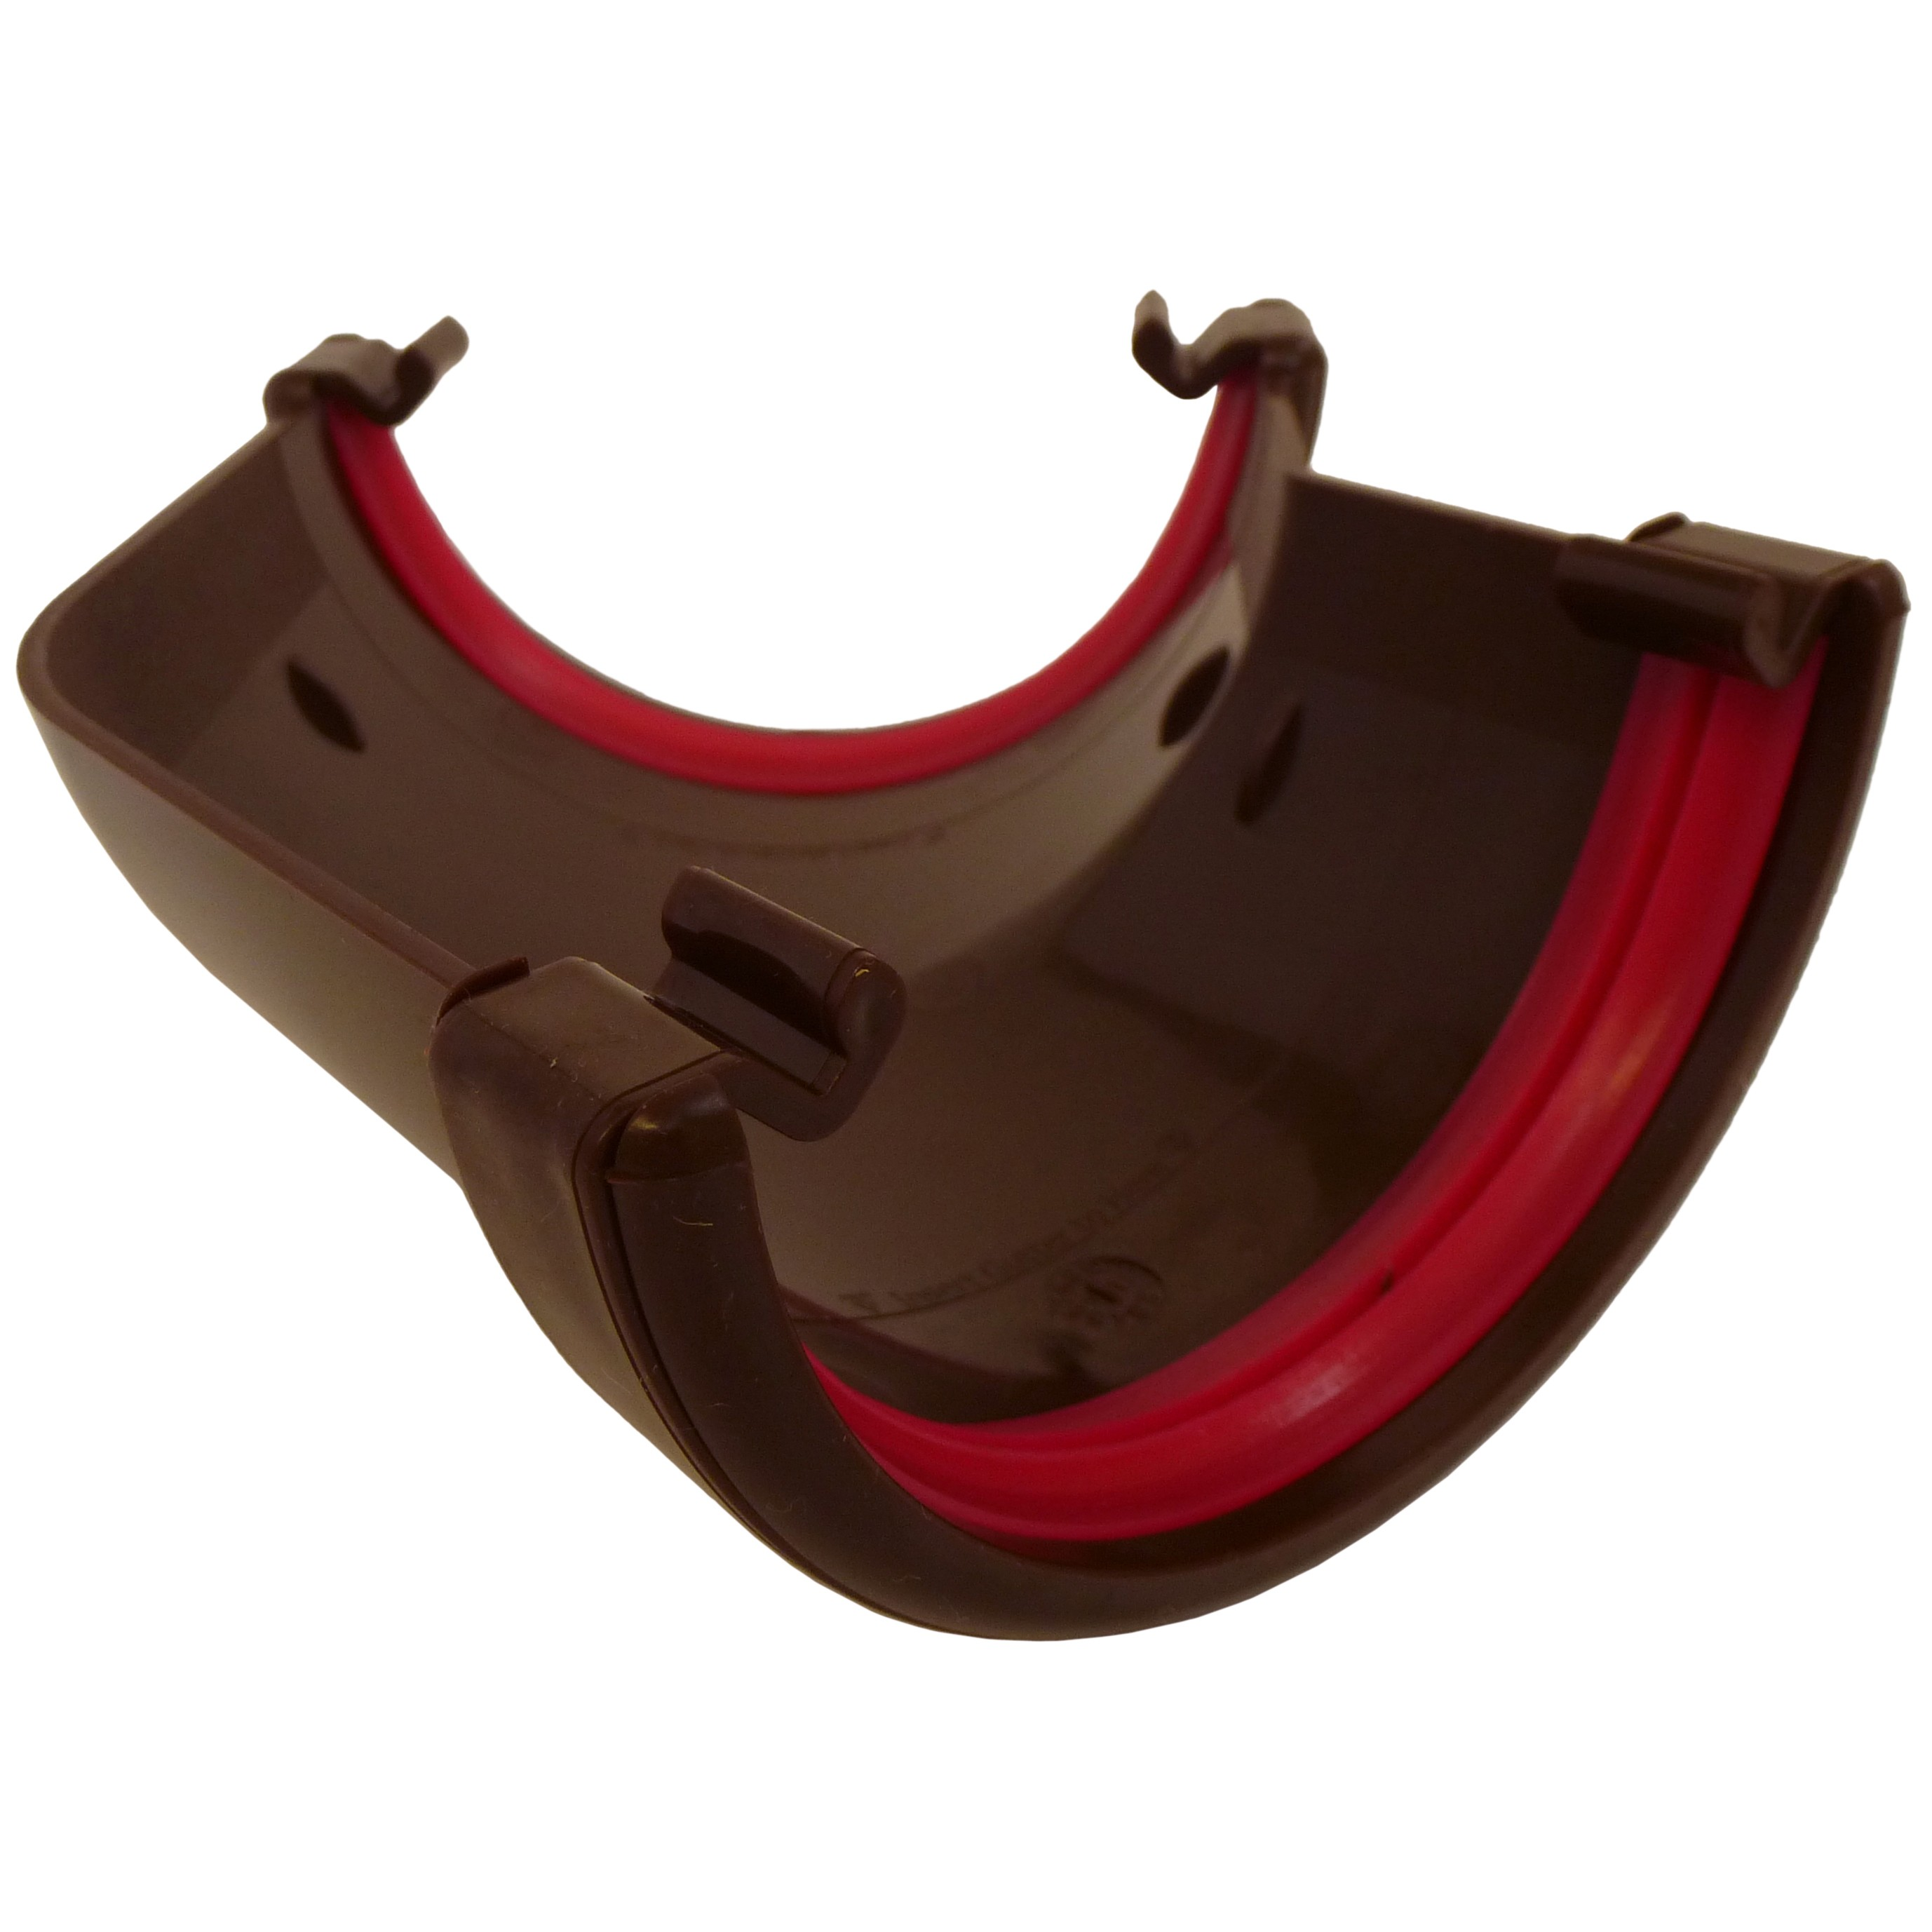 Freeflow 112mm Half Round Gutter 135 Degree Angle - Brown